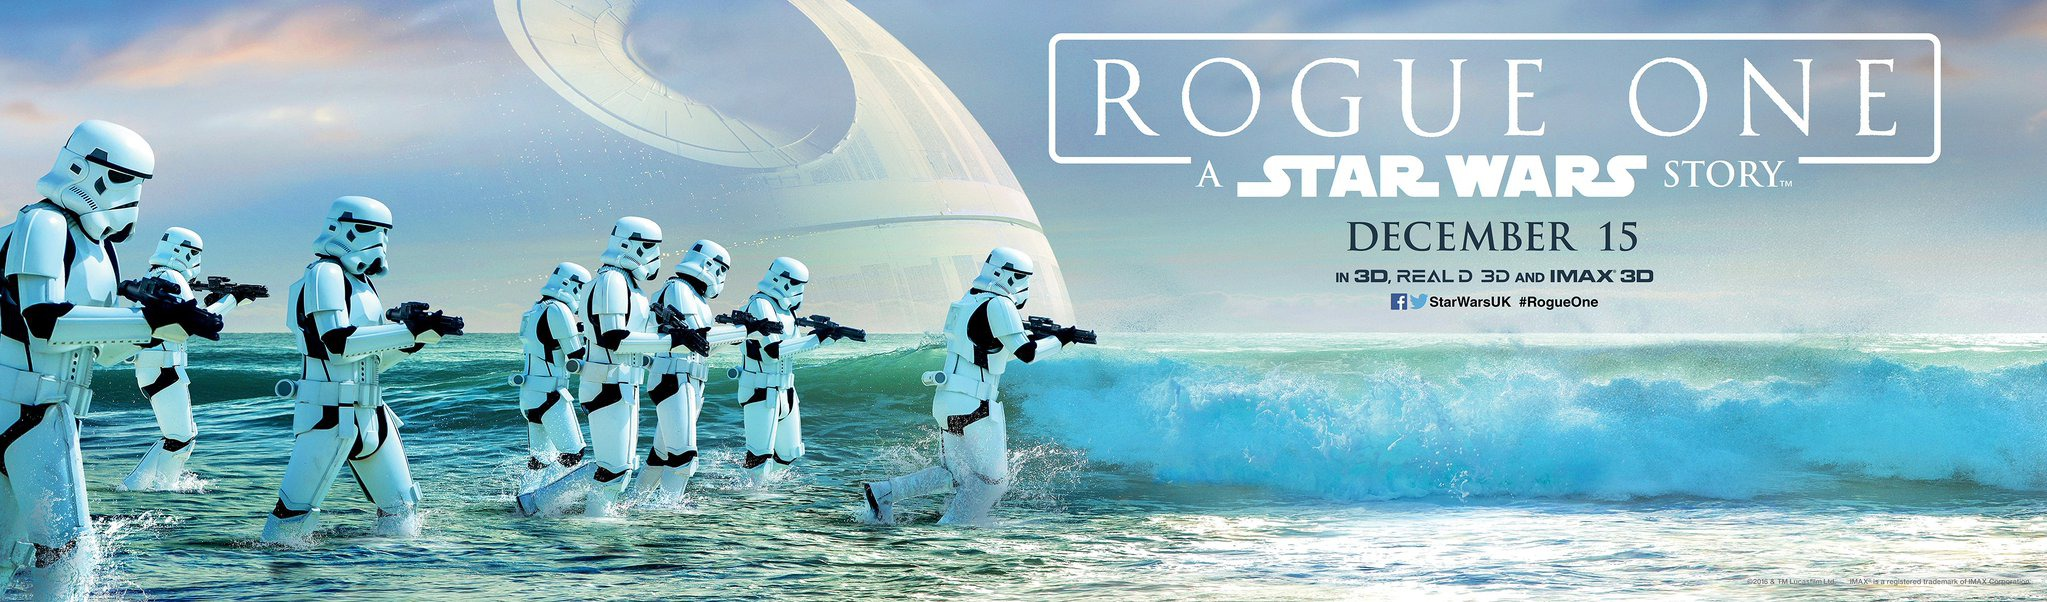 rogue-one-a-star-wars-story-08novembro2016-1